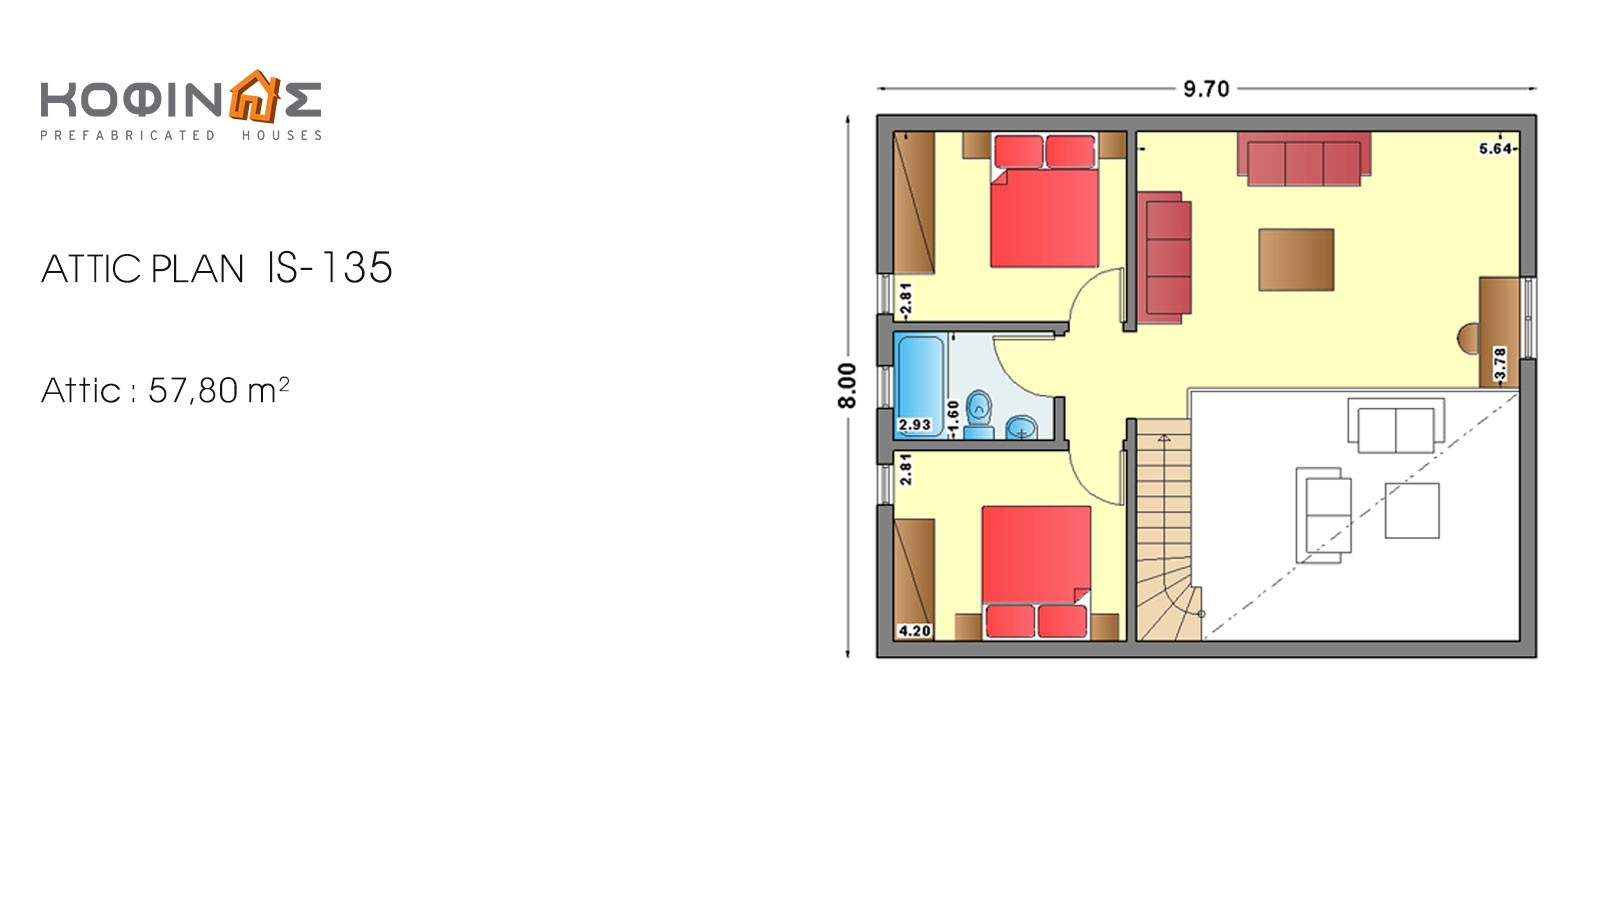 1-story house with attic IS-135, total surface of 135,40 m²